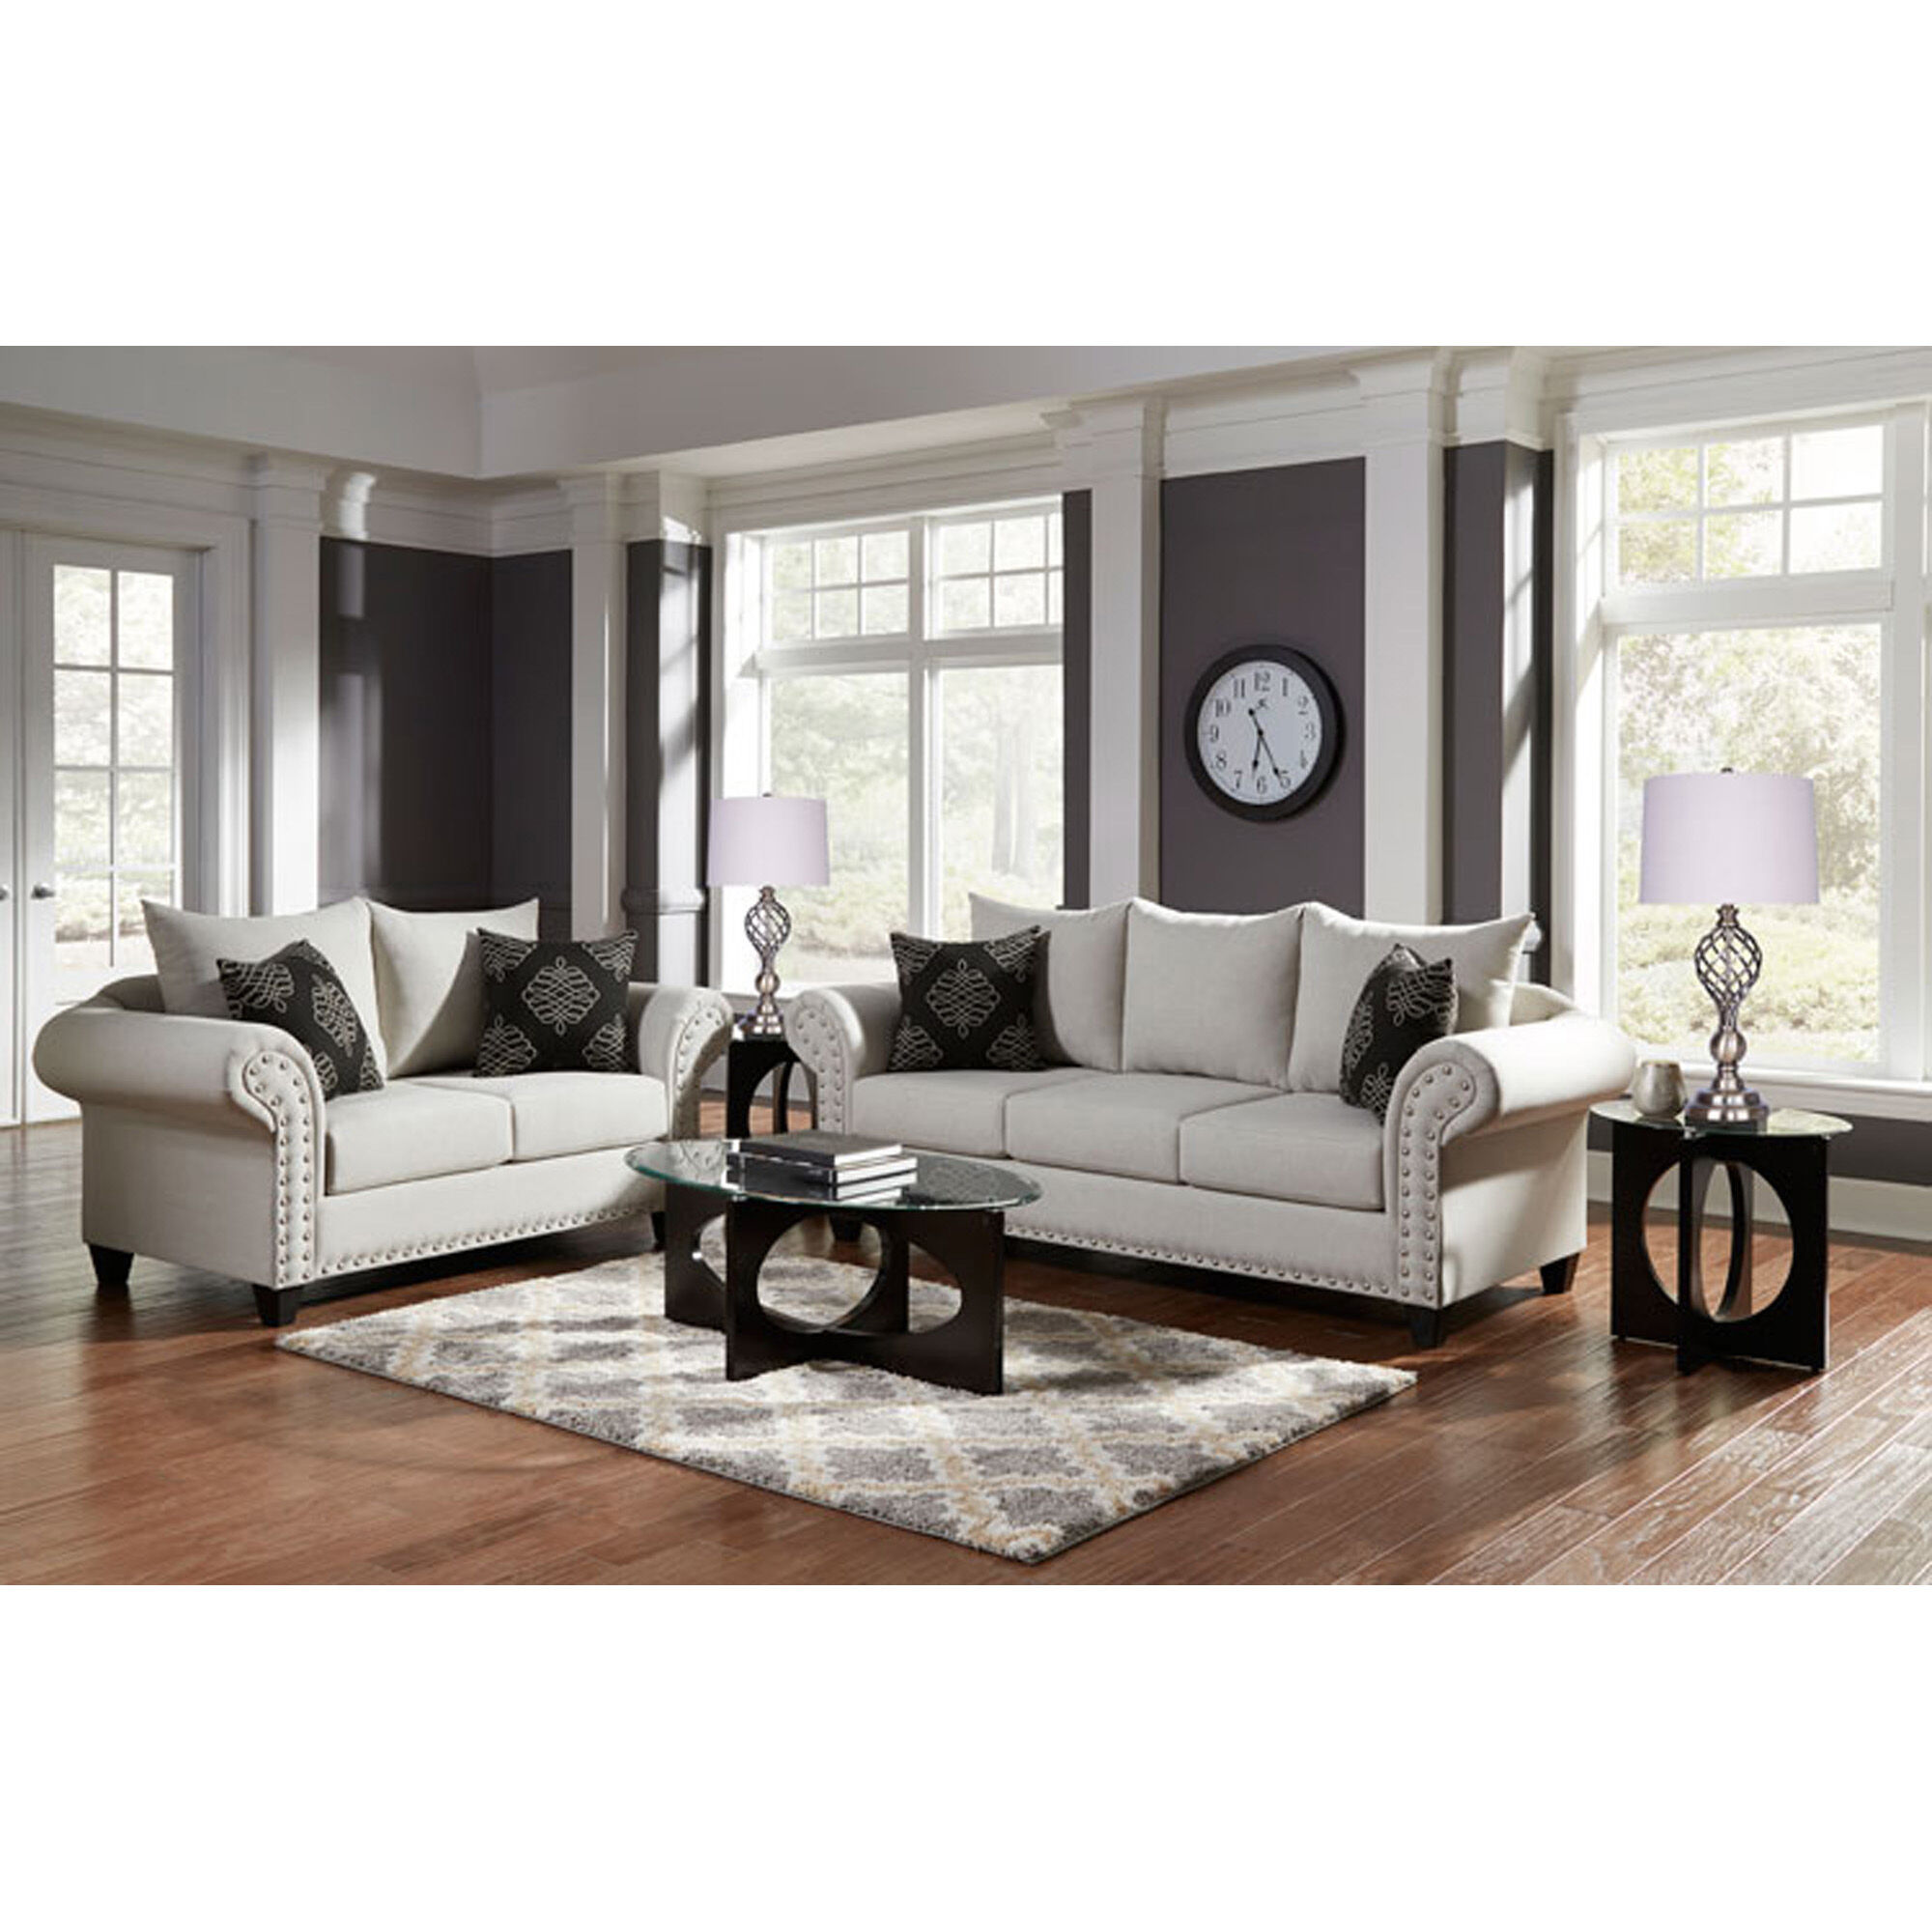 2 Piece Beverly Living Room Collection Lease to